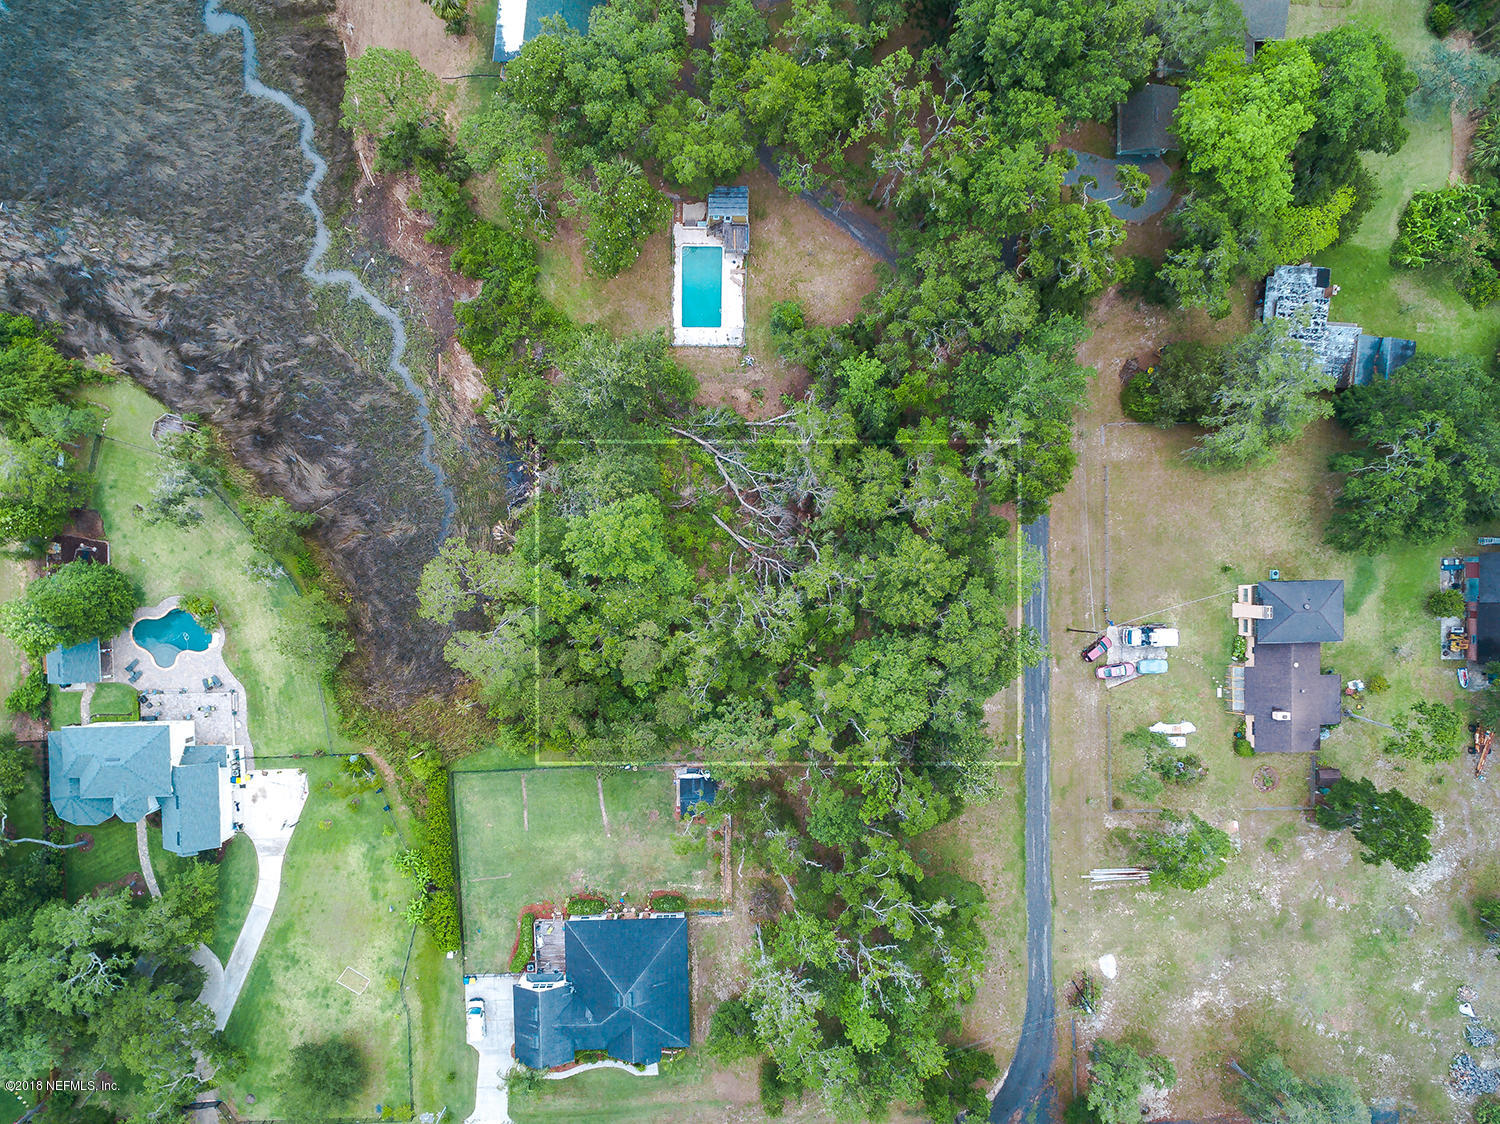 0 GALVANIZED, JACKSONVILLE, FLORIDA 32225, ,Vacant land,For sale,GALVANIZED,953828